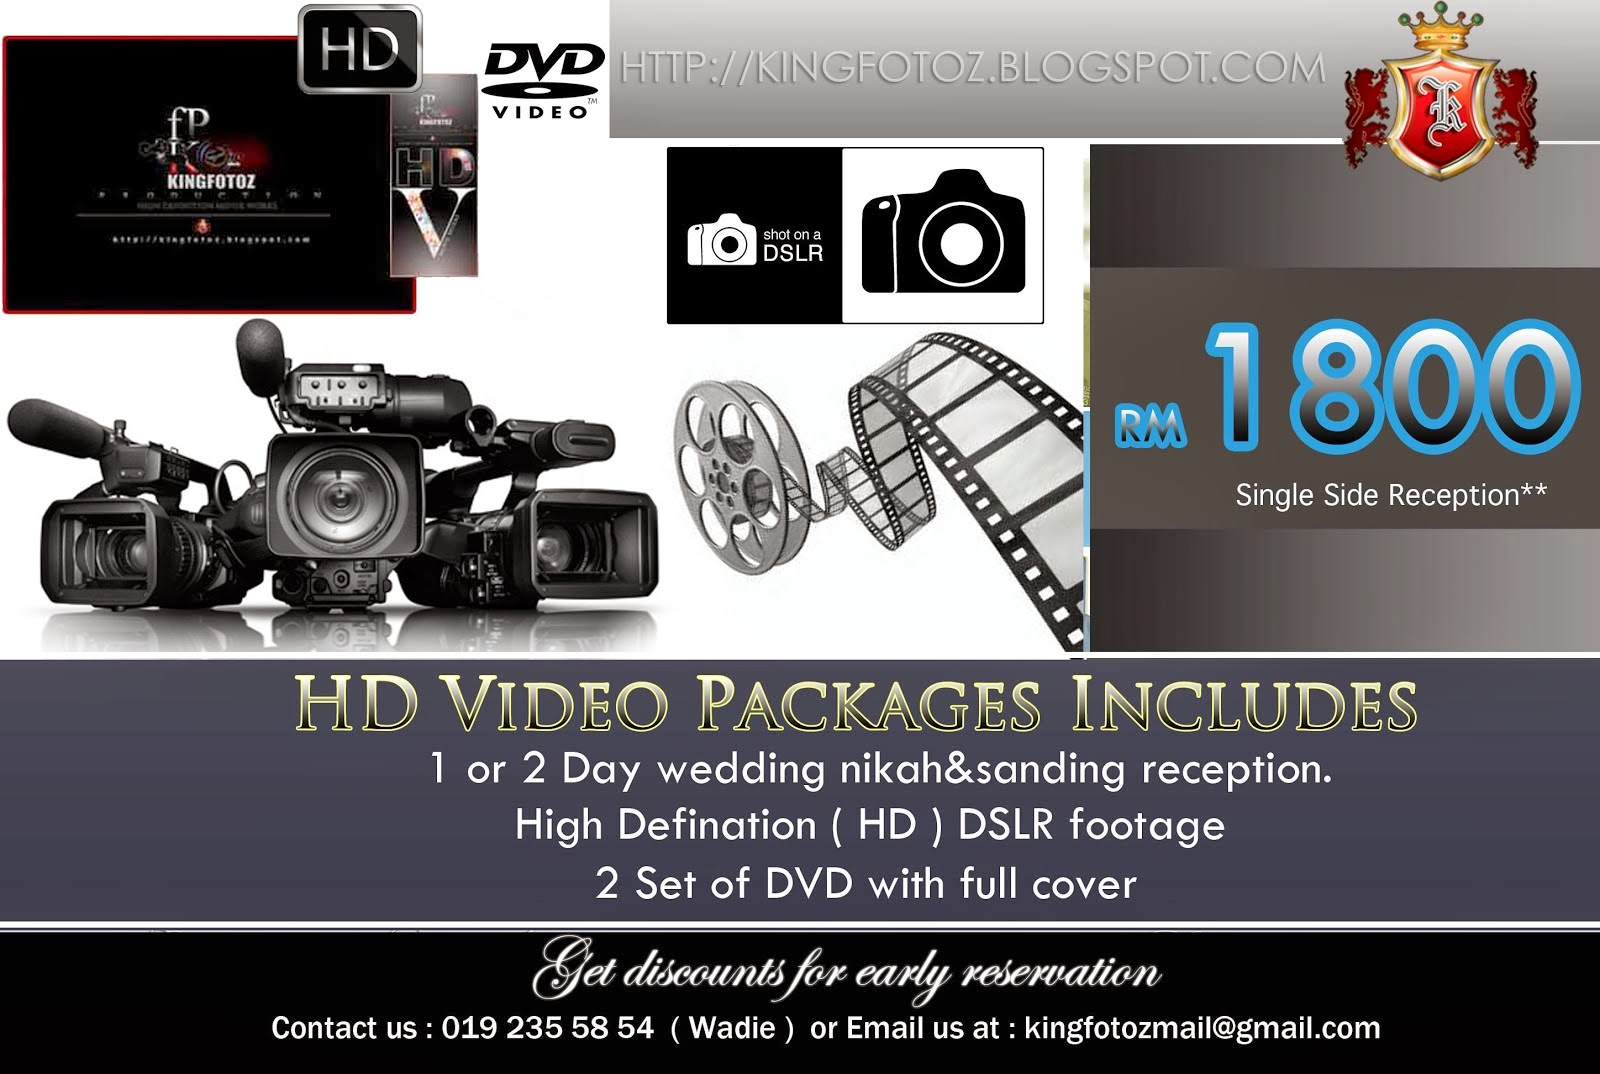 HD Video Wedding Packages